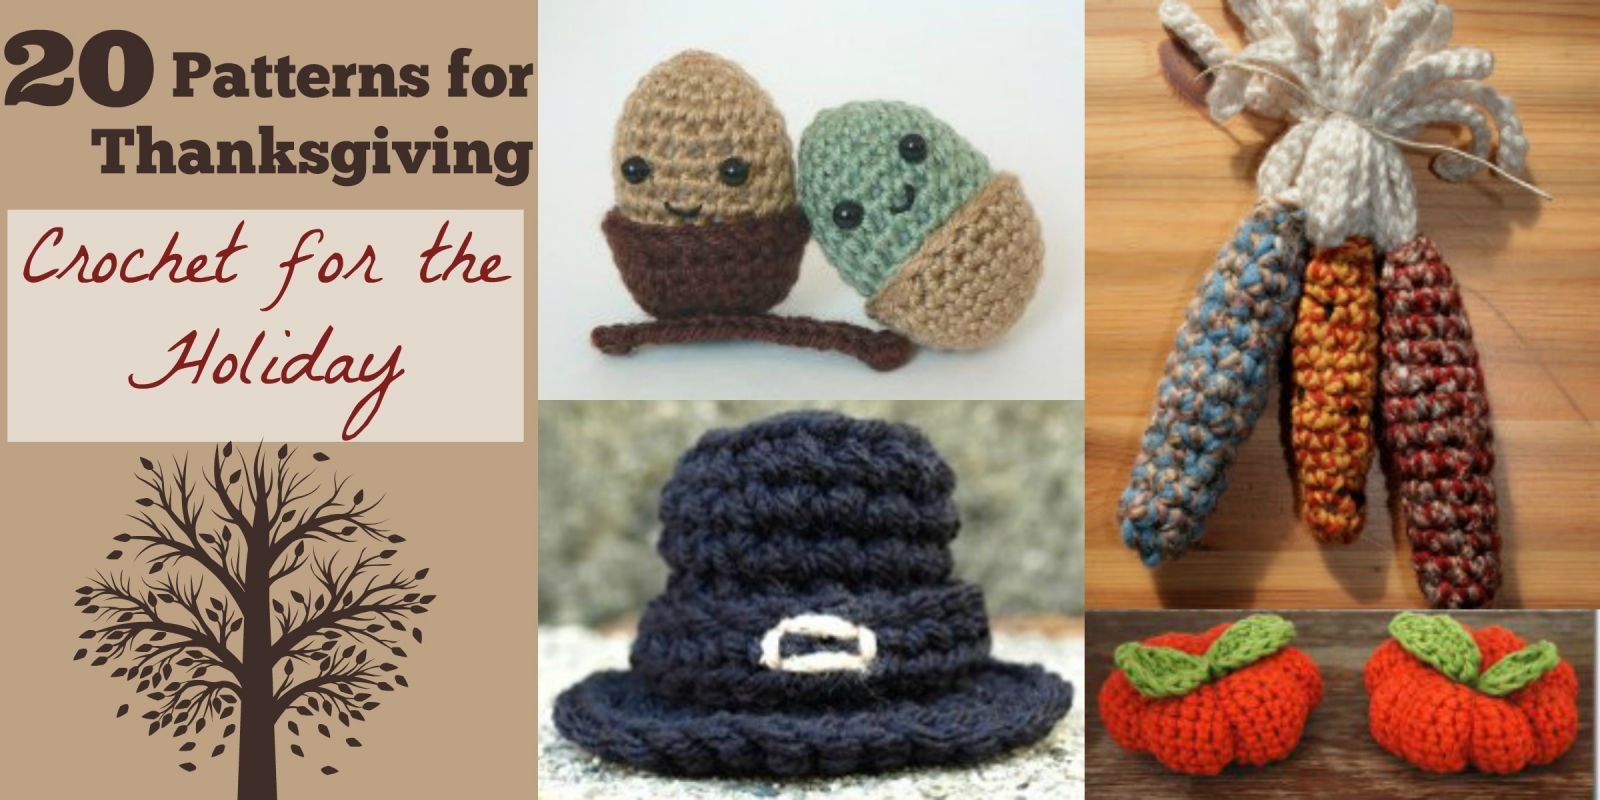 20 Patterns for Thanksgiving: Crochet for the Holiday